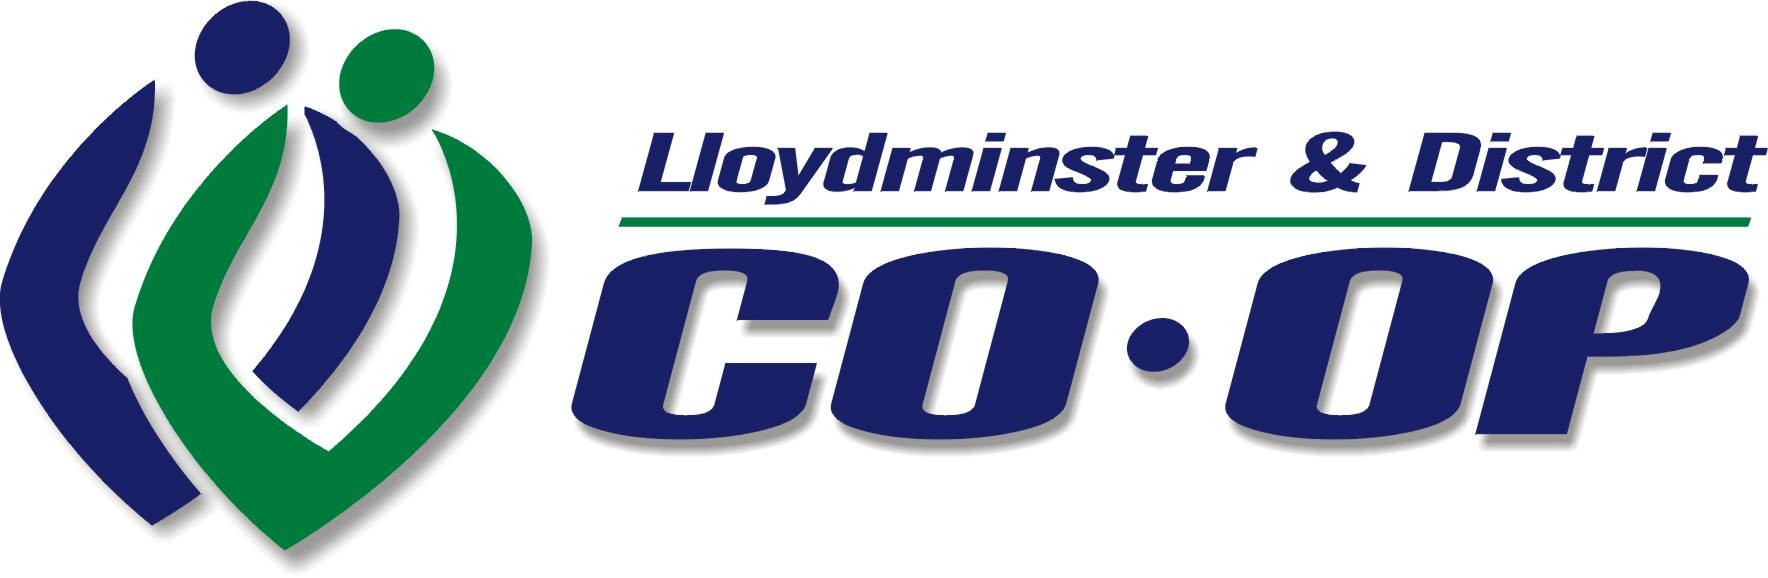 Lloyd Co-op Logo.jpg